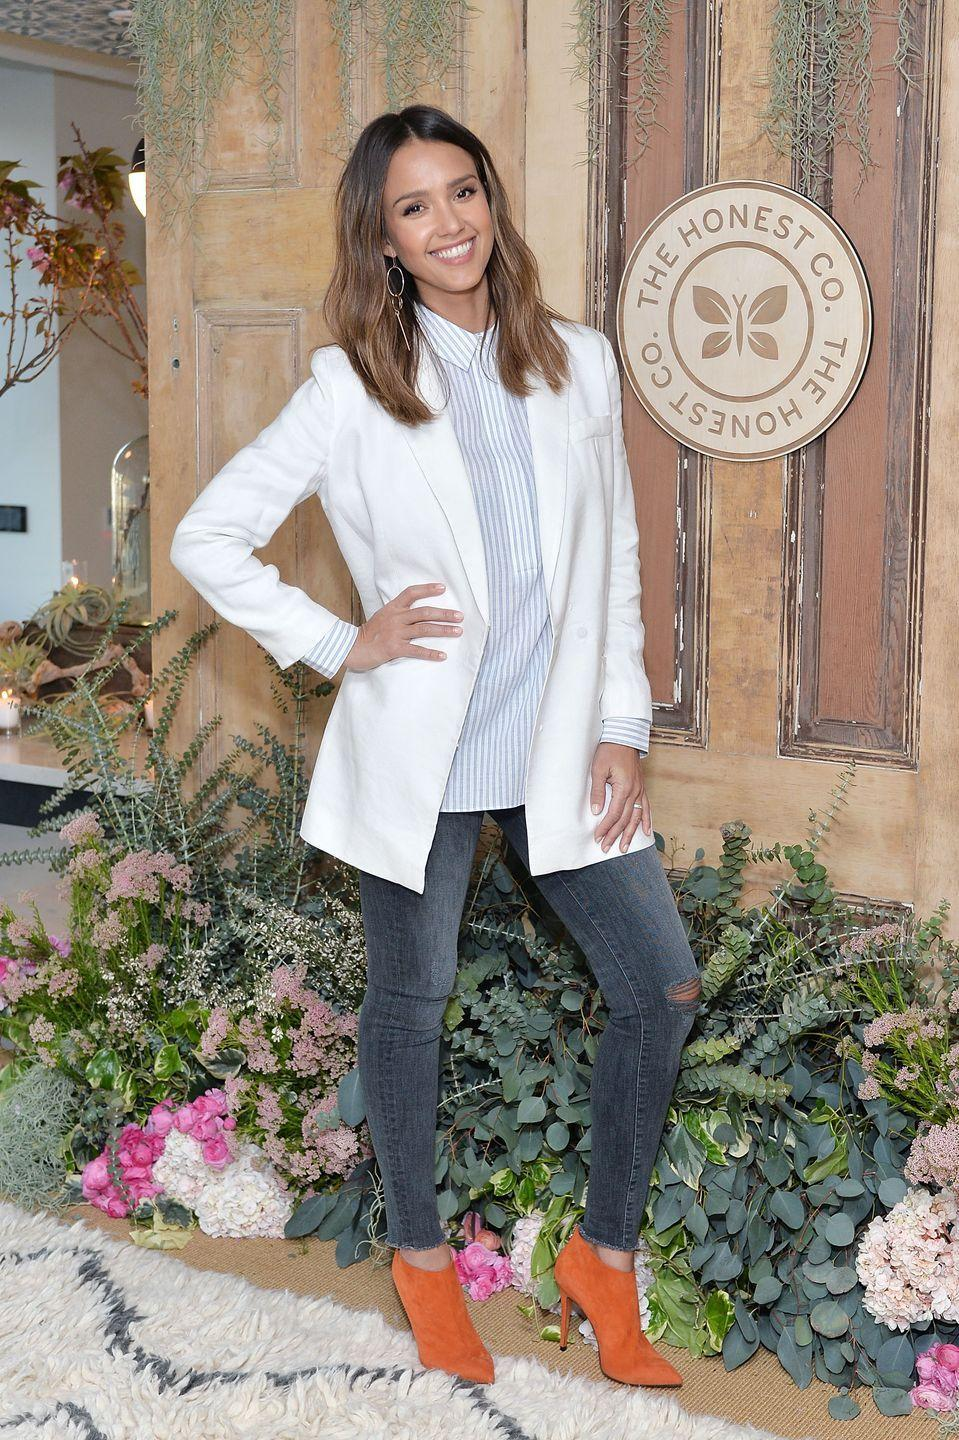 """<p>While trying to keep up between her careers as an actress and co-founder of The Honest Company, <a href=""""https://www.delish.com/kitchen-tools/kitchen-secrets/interviews/a42724/jessica-alba-diet-eating-habits/"""" rel=""""nofollow noopener"""" target=""""_blank"""" data-ylk=""""slk:Jessica Alba"""" class=""""link rapid-noclick-resp"""">Jessica Alba</a> relies on water to get her through the day. <em>But</em>, regular H20 isn't Alba's go-to. It's actually salty water (which most people hate). She says she loves adding pink Himalayan salt to her agua. </p>"""